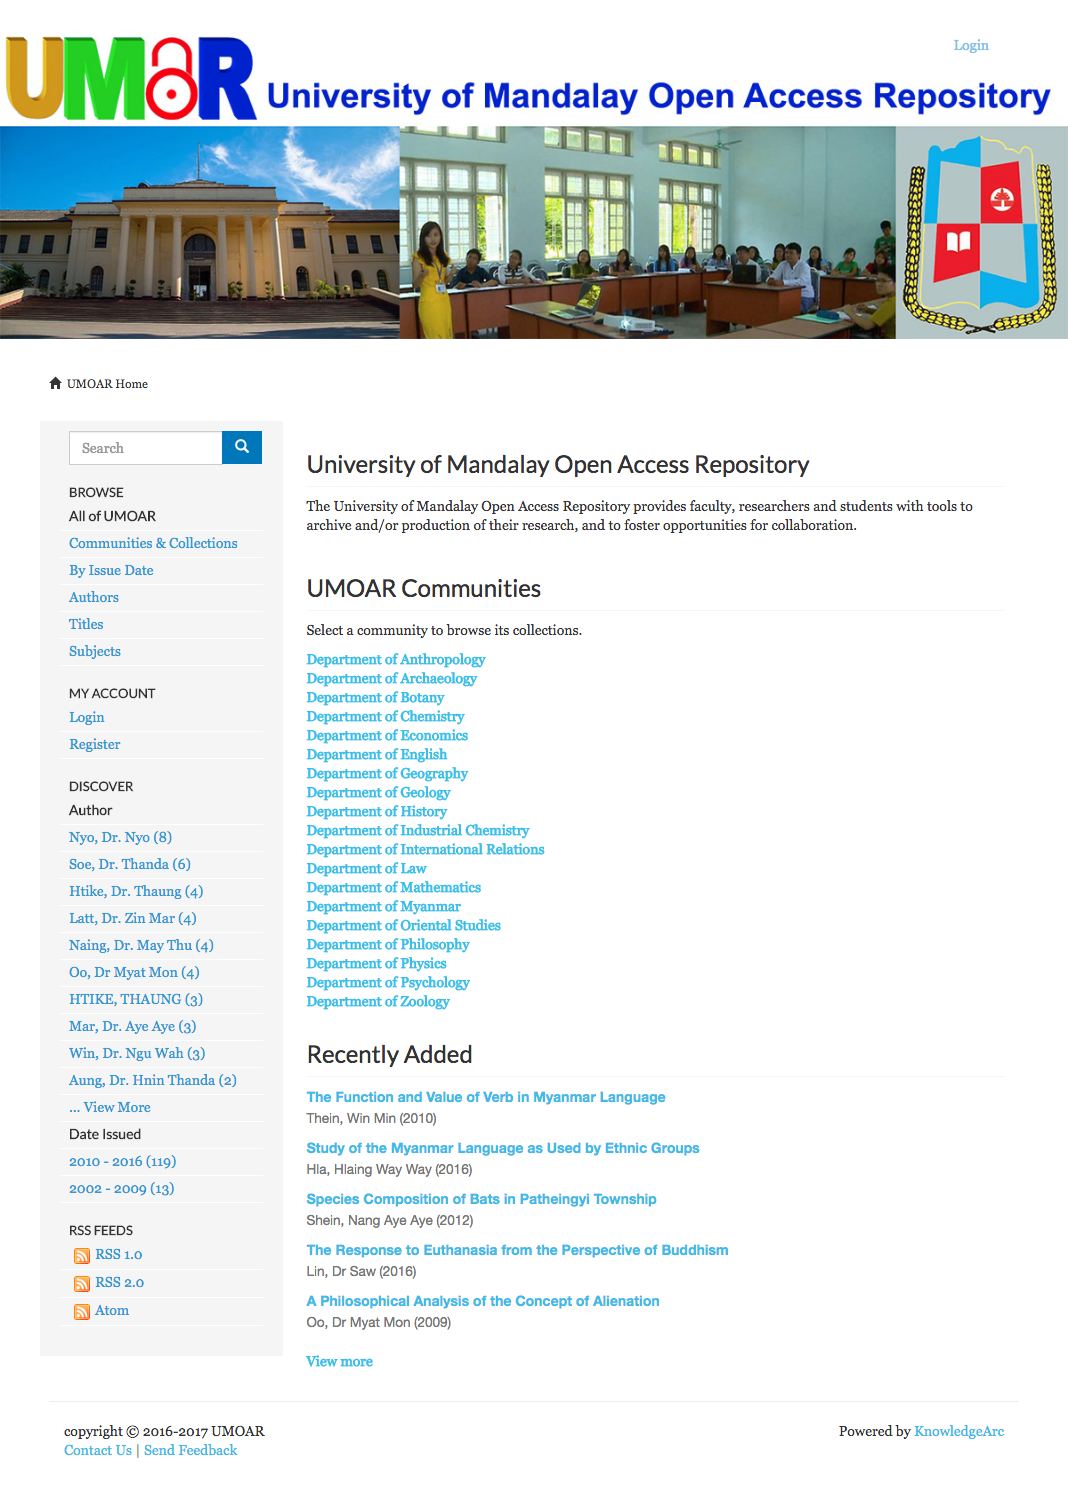 University of Mandalay Open Access Repository